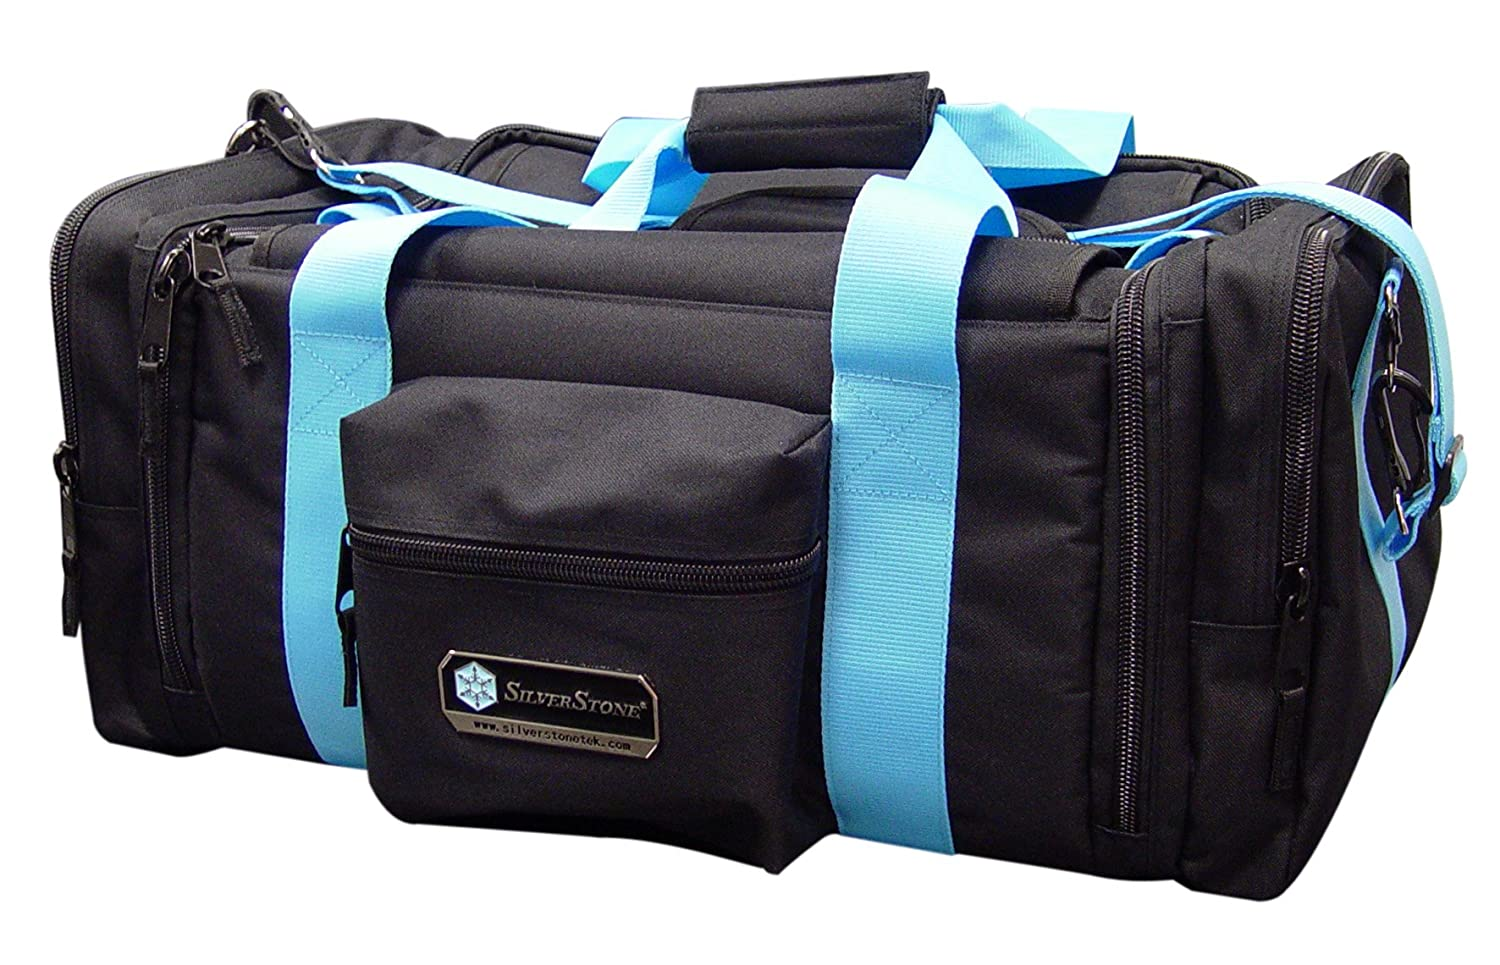 Silverstone Tek Carrying Bag for Sugo Series or Other SFF Cases ...